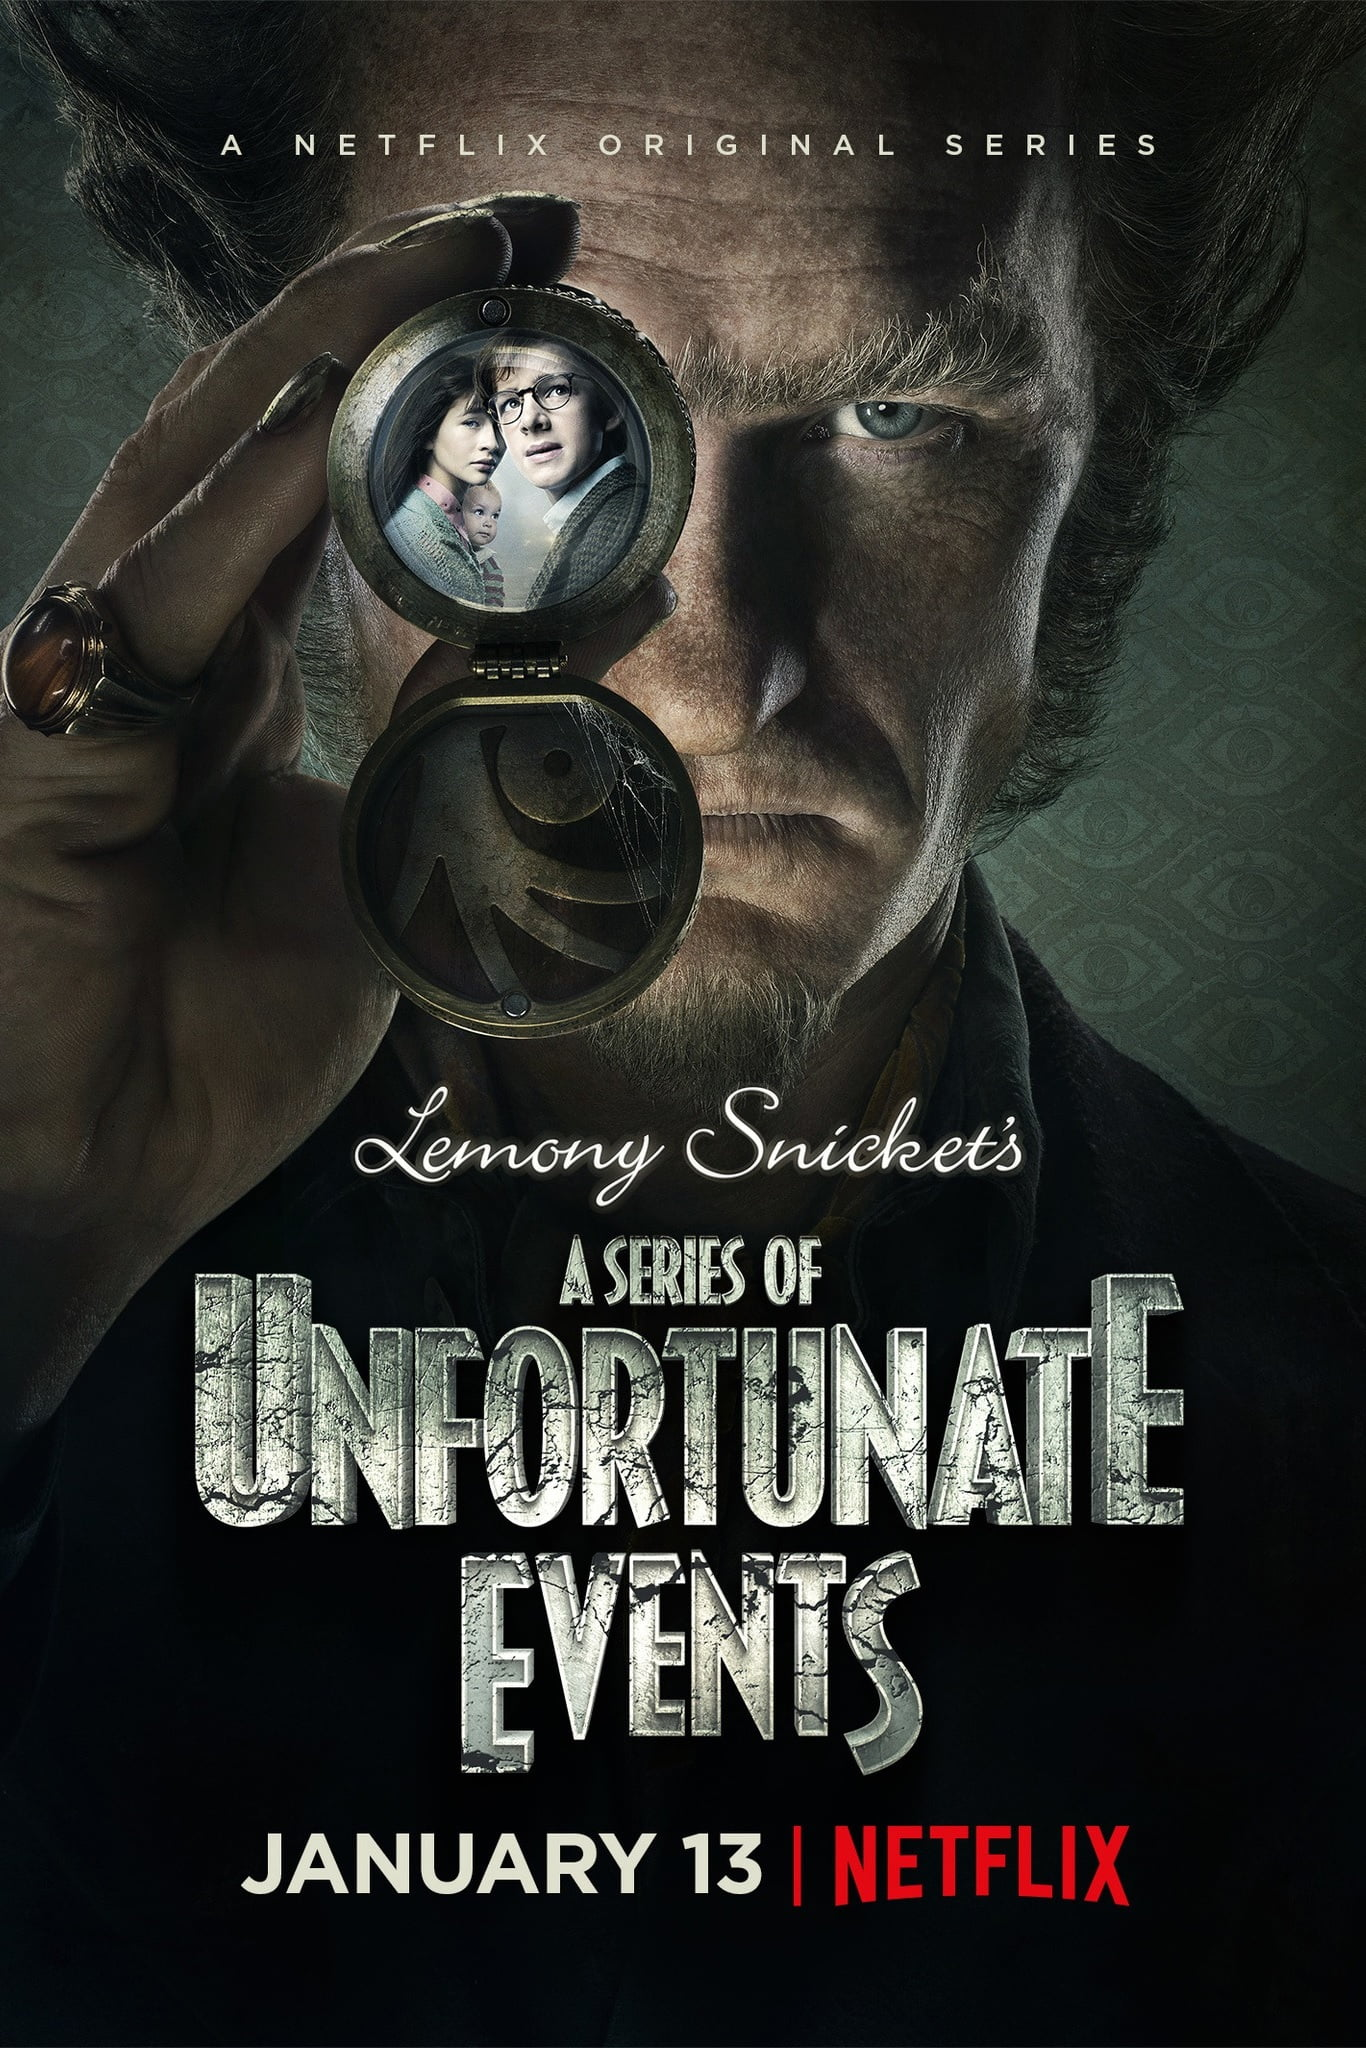 a-series-of-unfortunate-events-filming-locations-poster